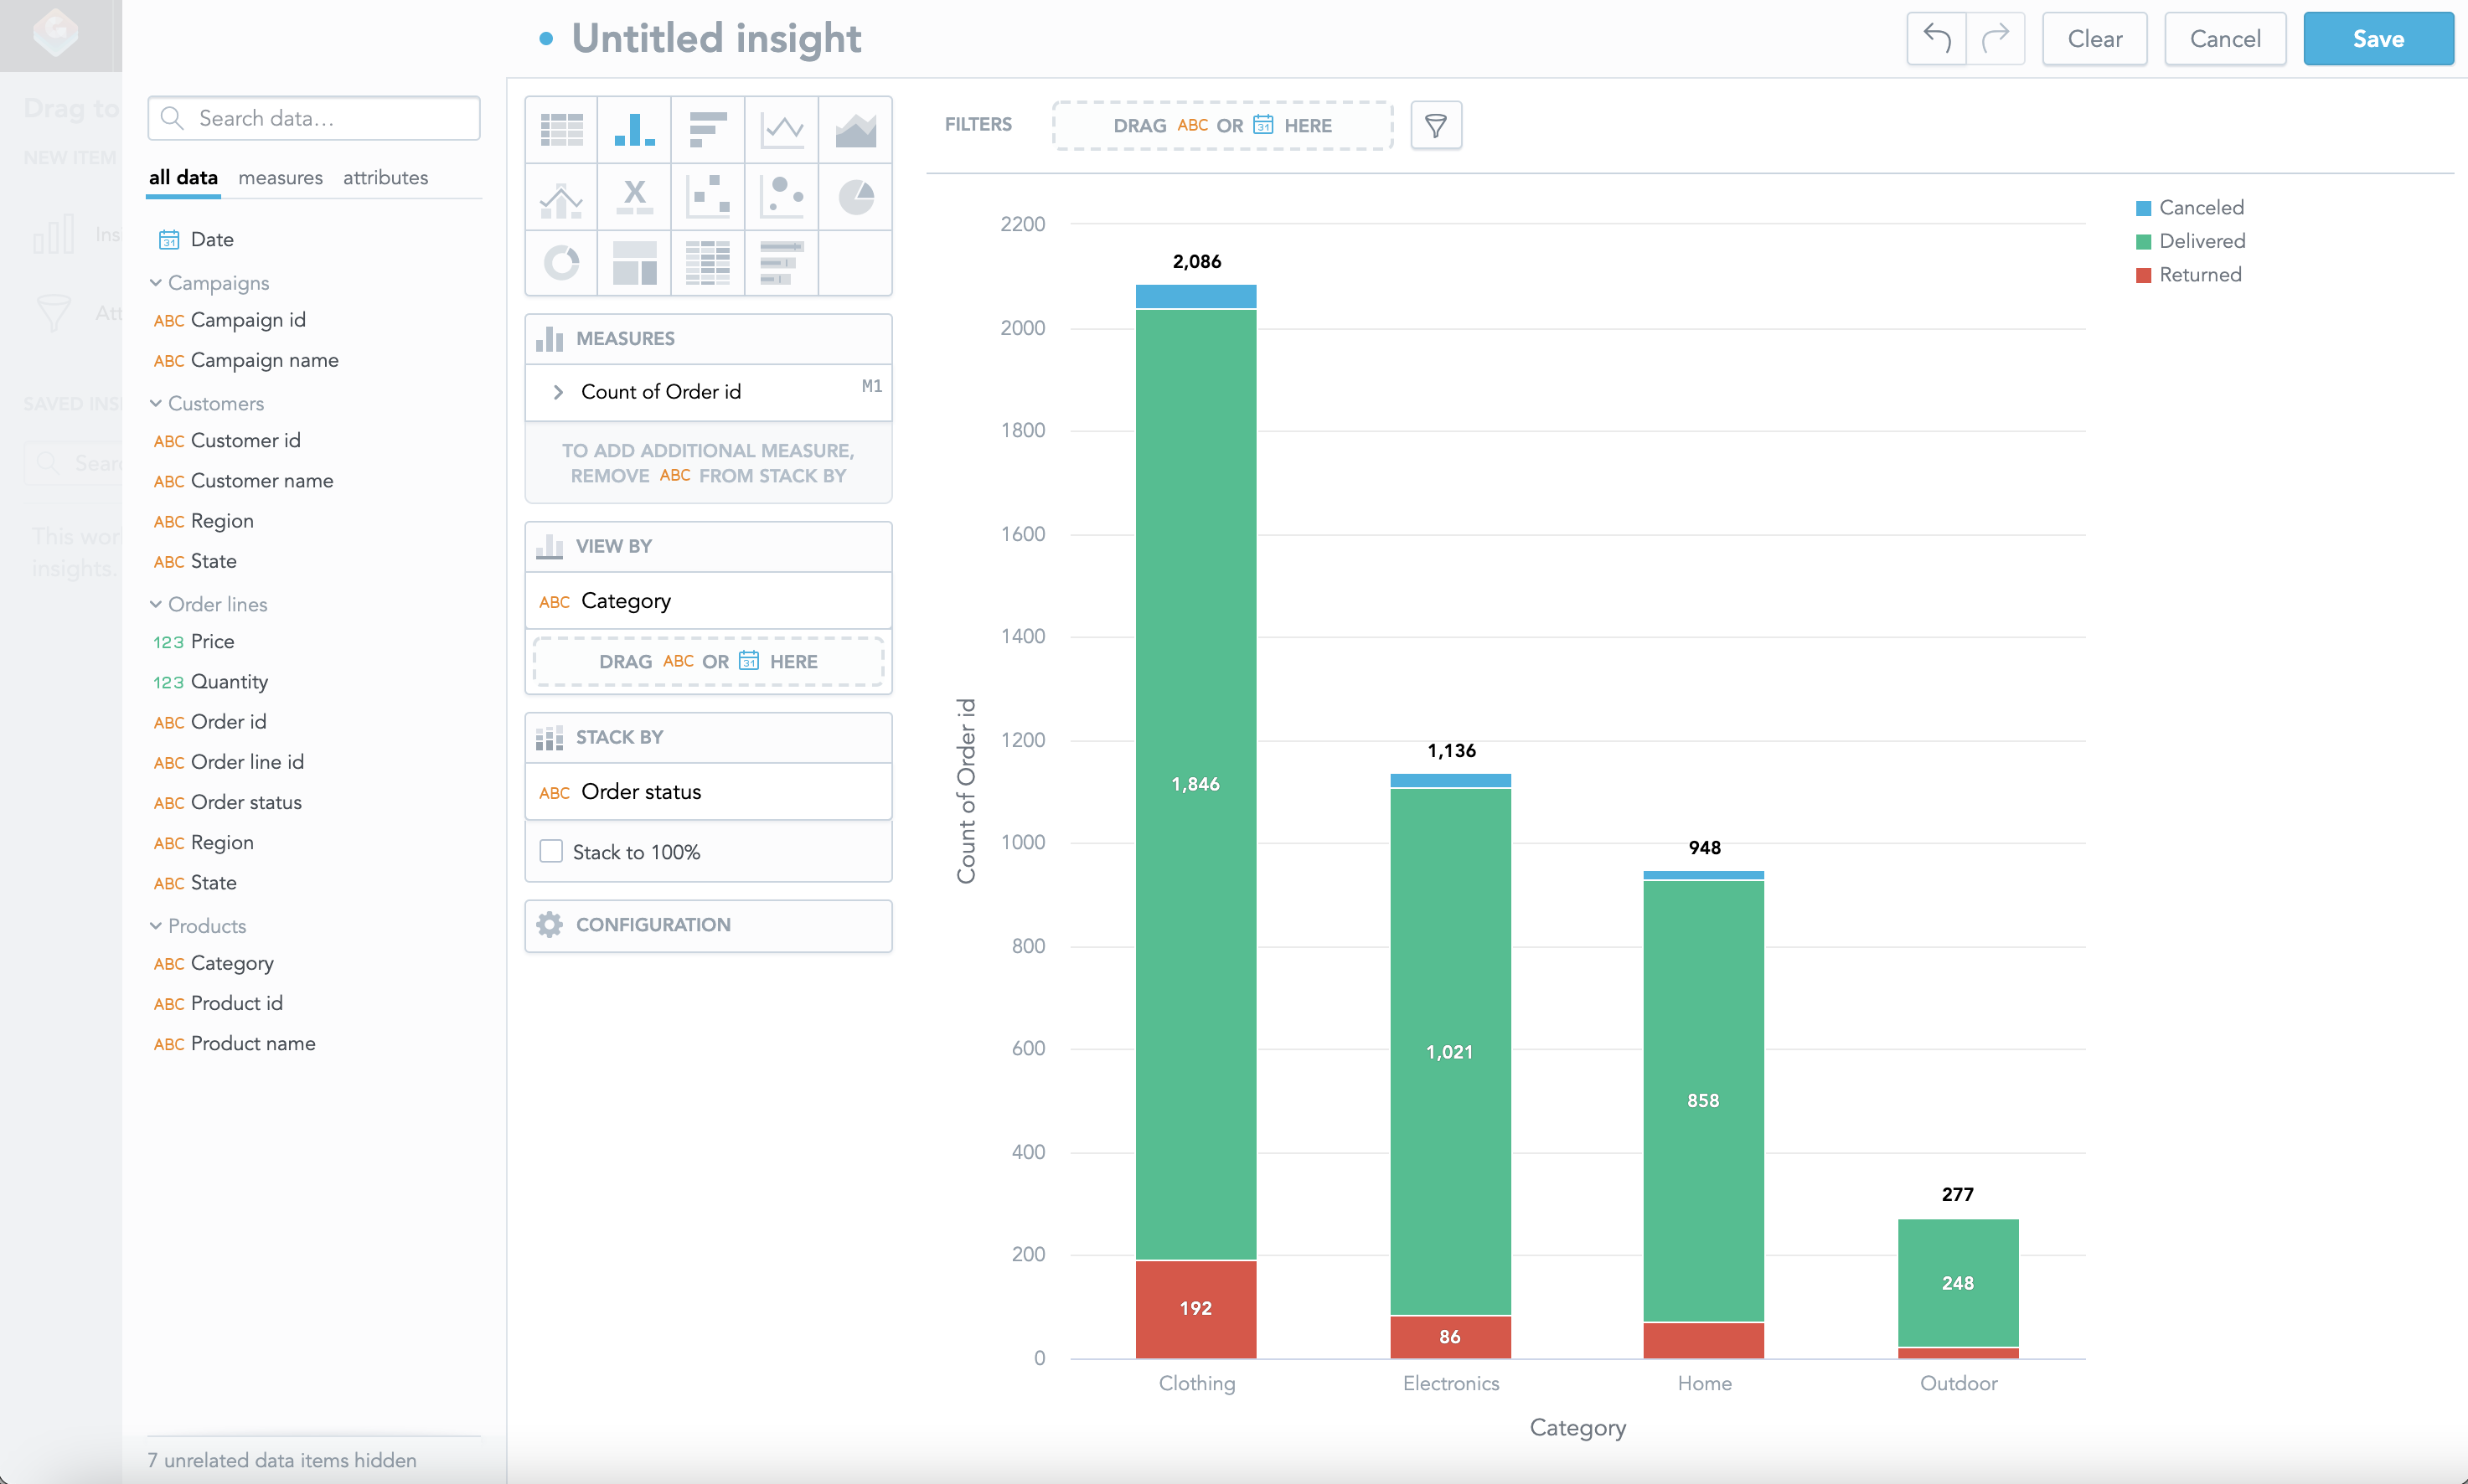 Insight - orders by category and status